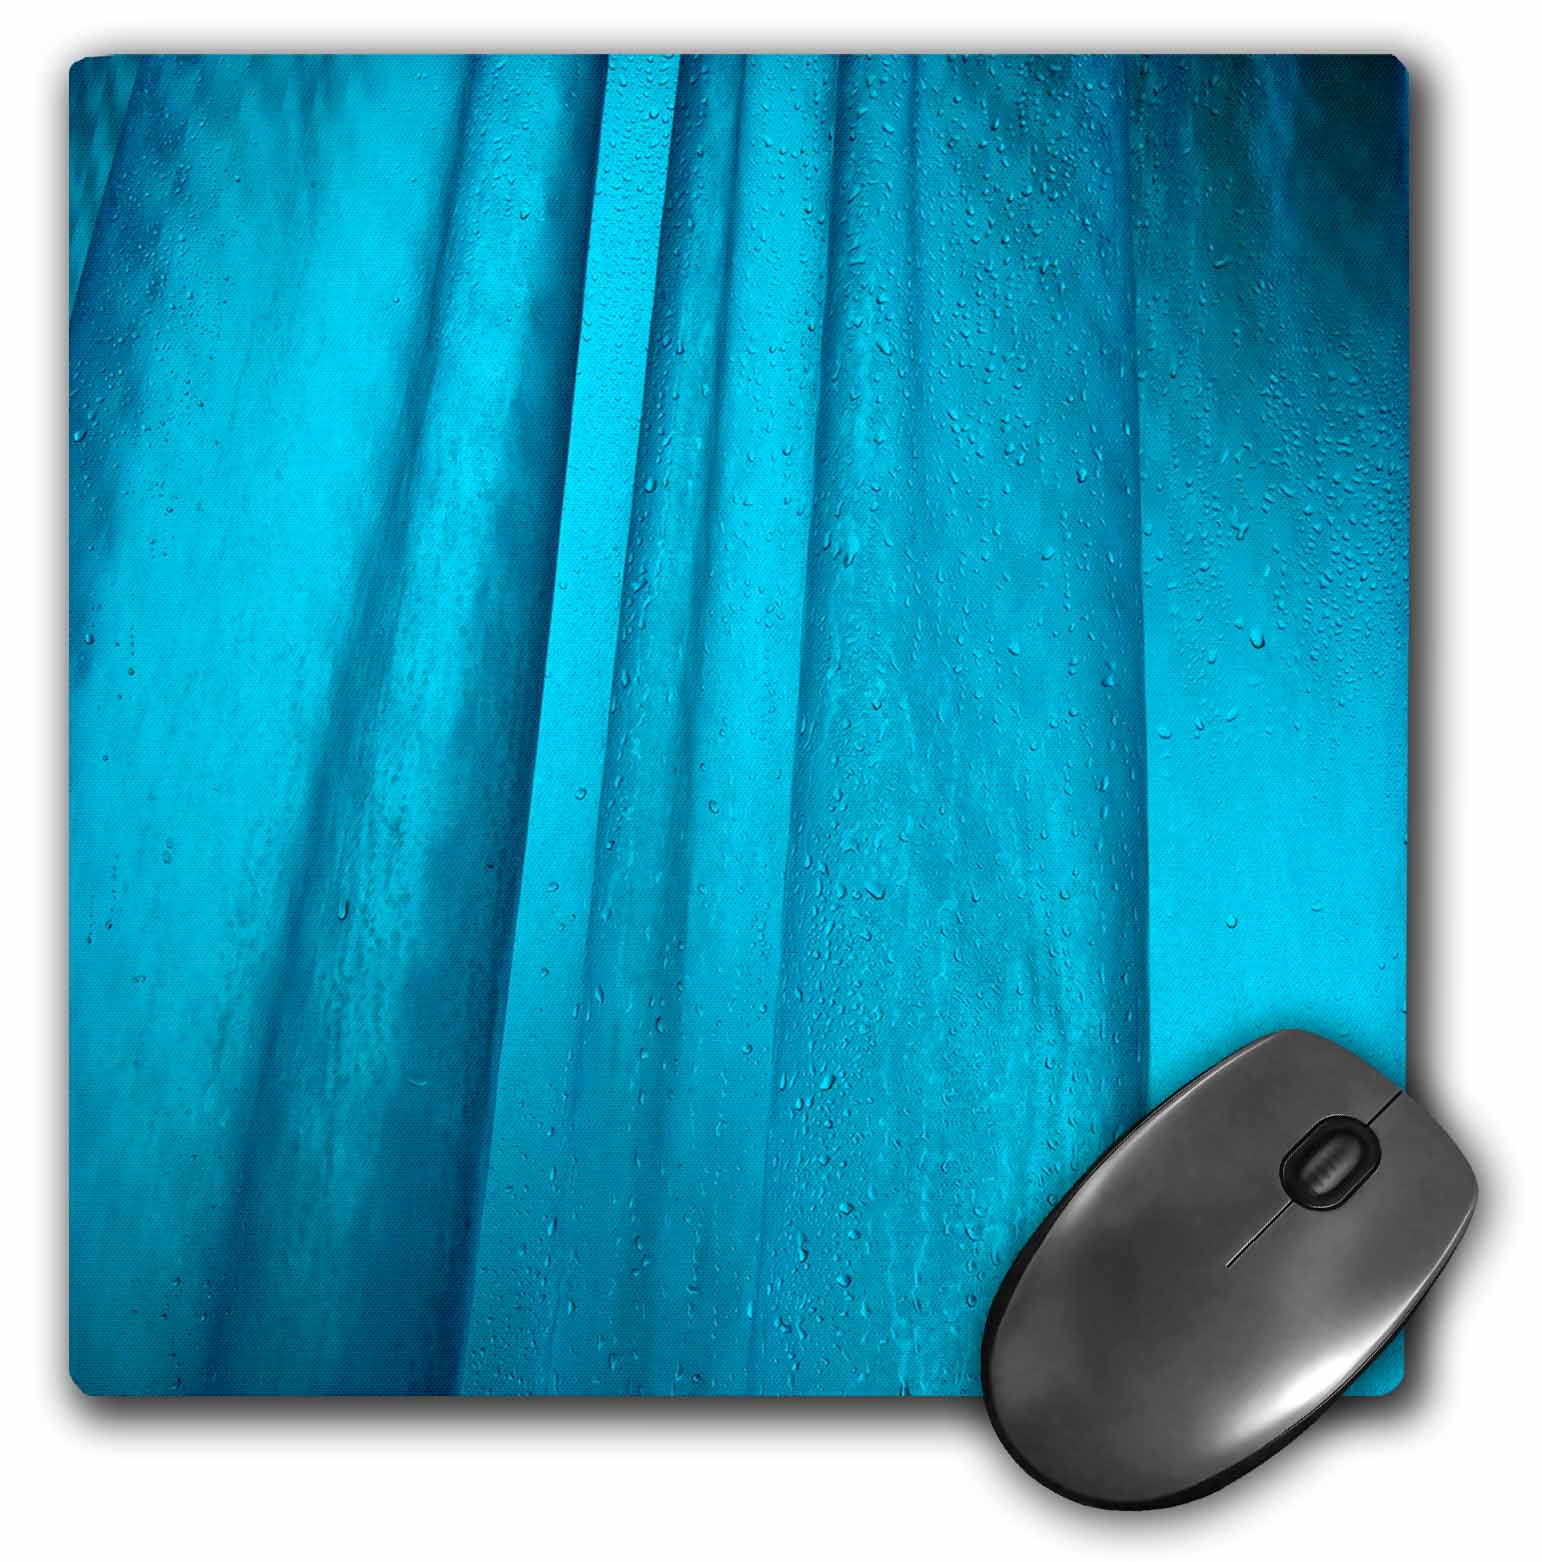 3dRose Abstract blue background wet shower curtain back lit, Mouse Pad, 8 by 8 inches